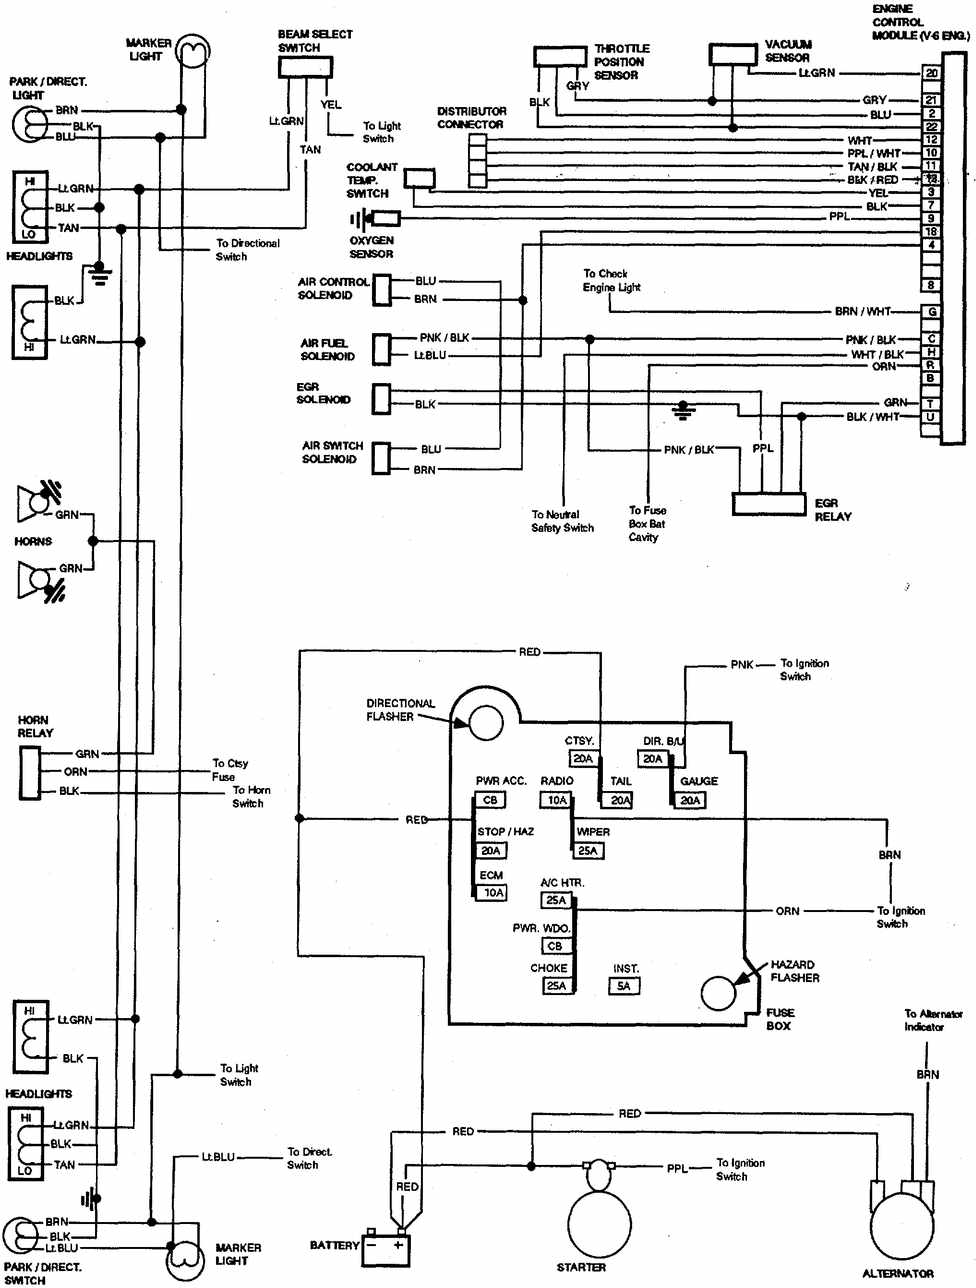 Wiring Diagrams 1999 Dodge Ram 2500 Diesel Diagram Will Be 1994 Chevrolet V8 Trucks 1981 1987 Electrical 1500 2001